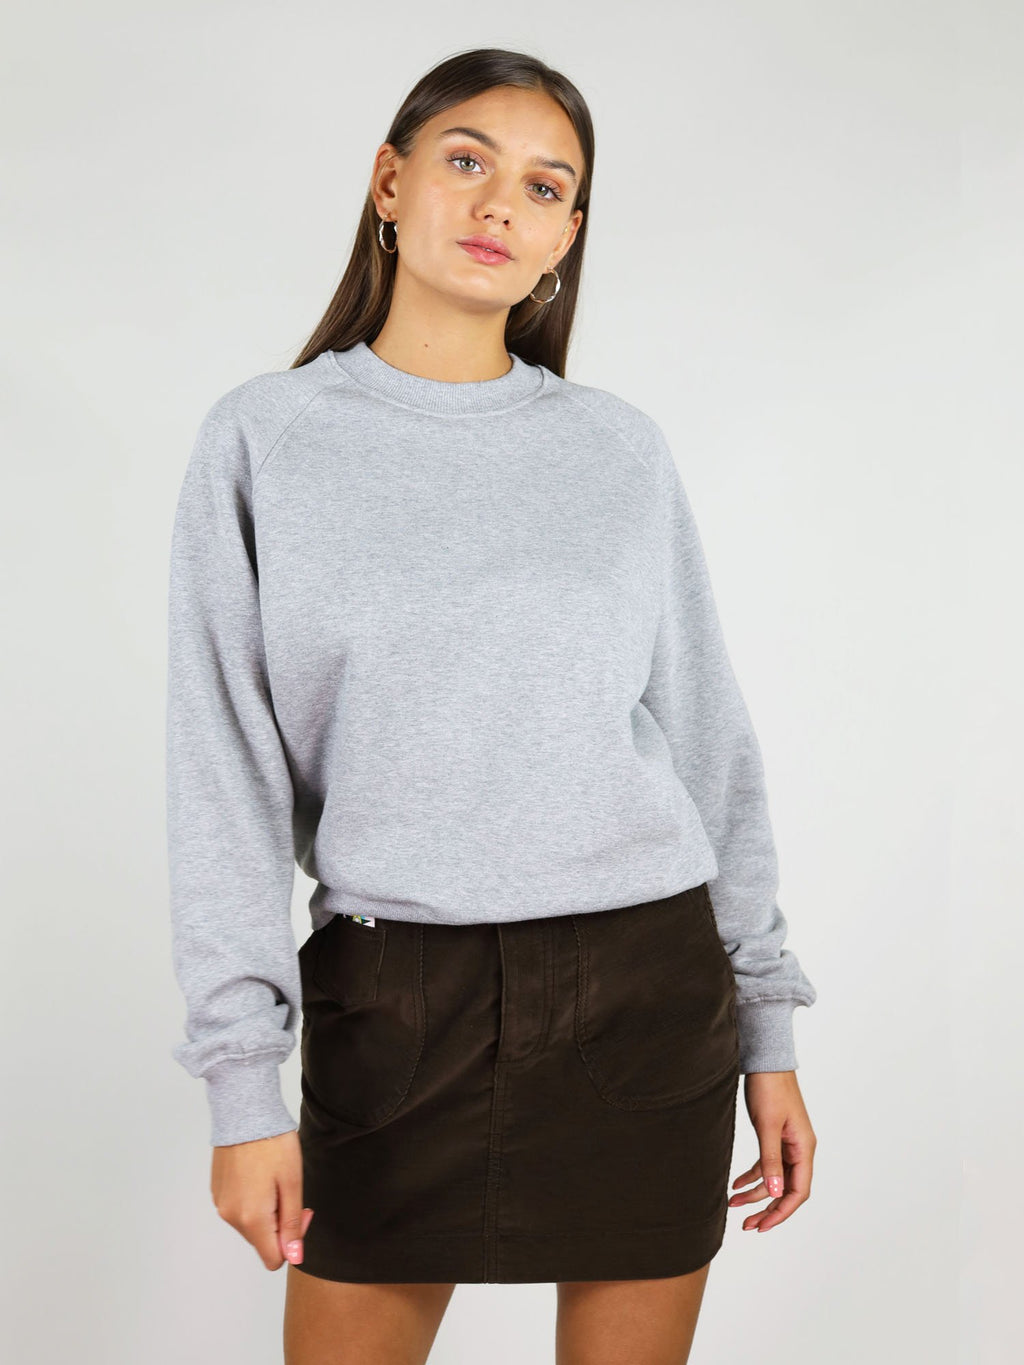 The warm & cosy organic sweatshirt in grey is a great basic piece for winter. It is very soft with slightly oversized fit, raglan sleeves and crew neck.